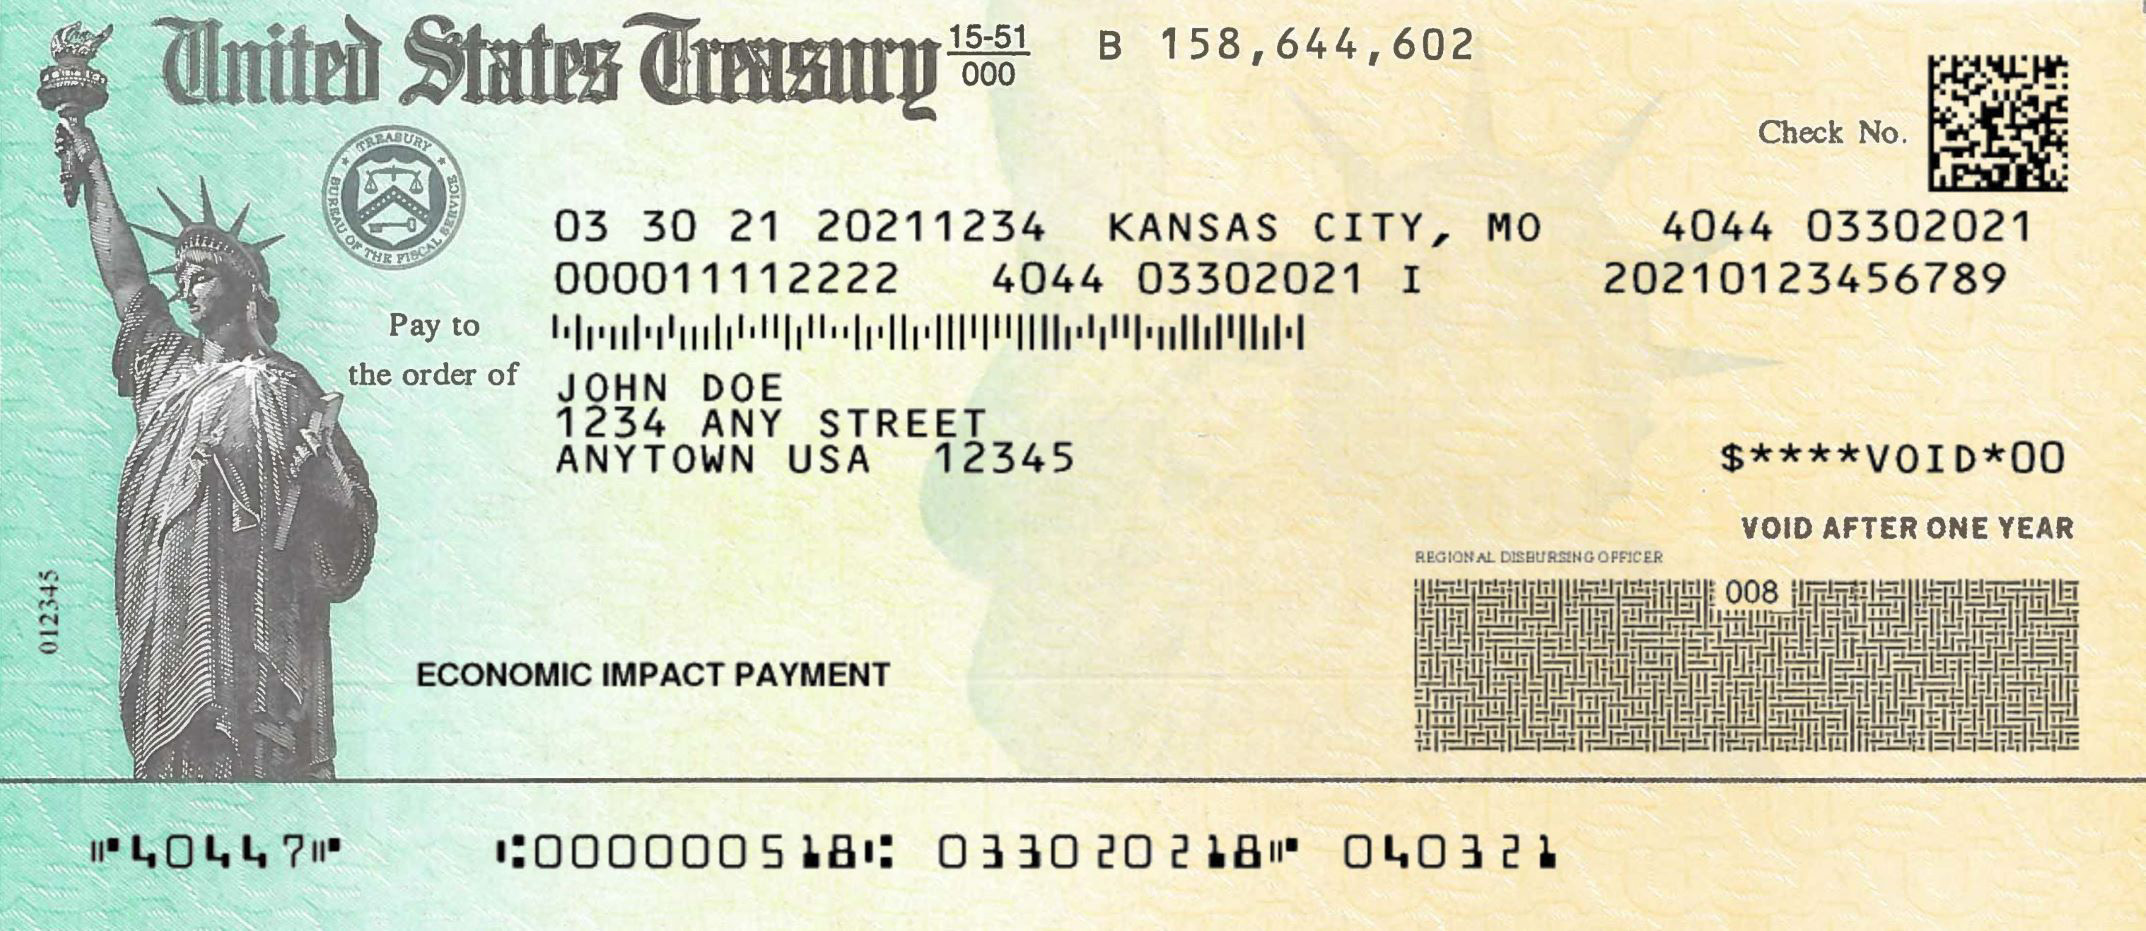 New Stimulus Check - March 2021